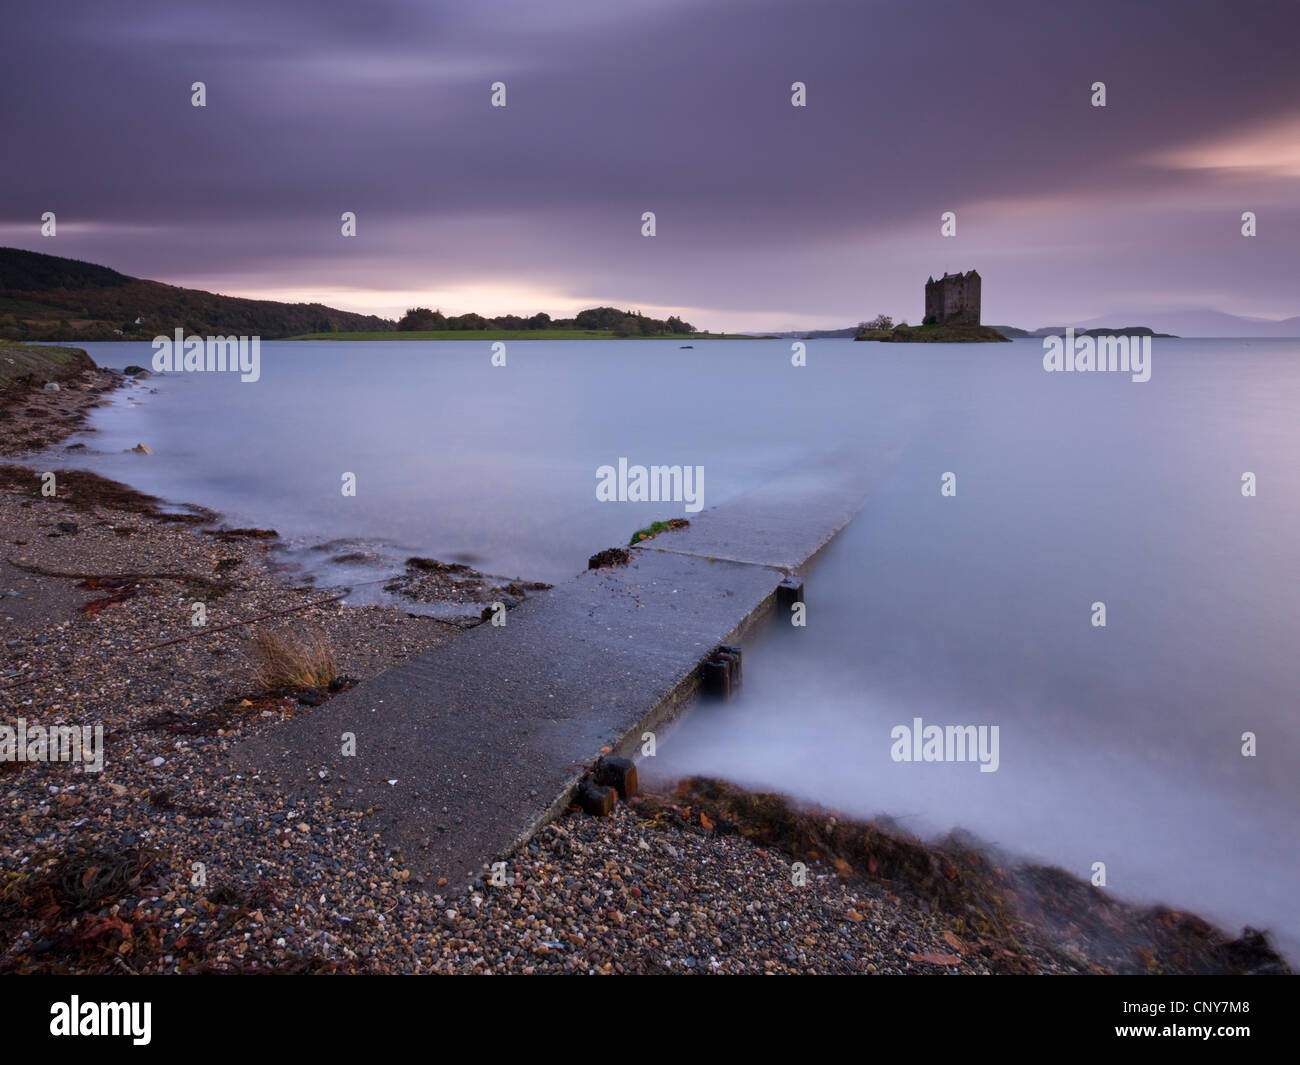 Concrete slipway leading to Castle Stalker and Loch Linnhe, Argyll, Scotland. Autumn (October) 2008 - Stock Image